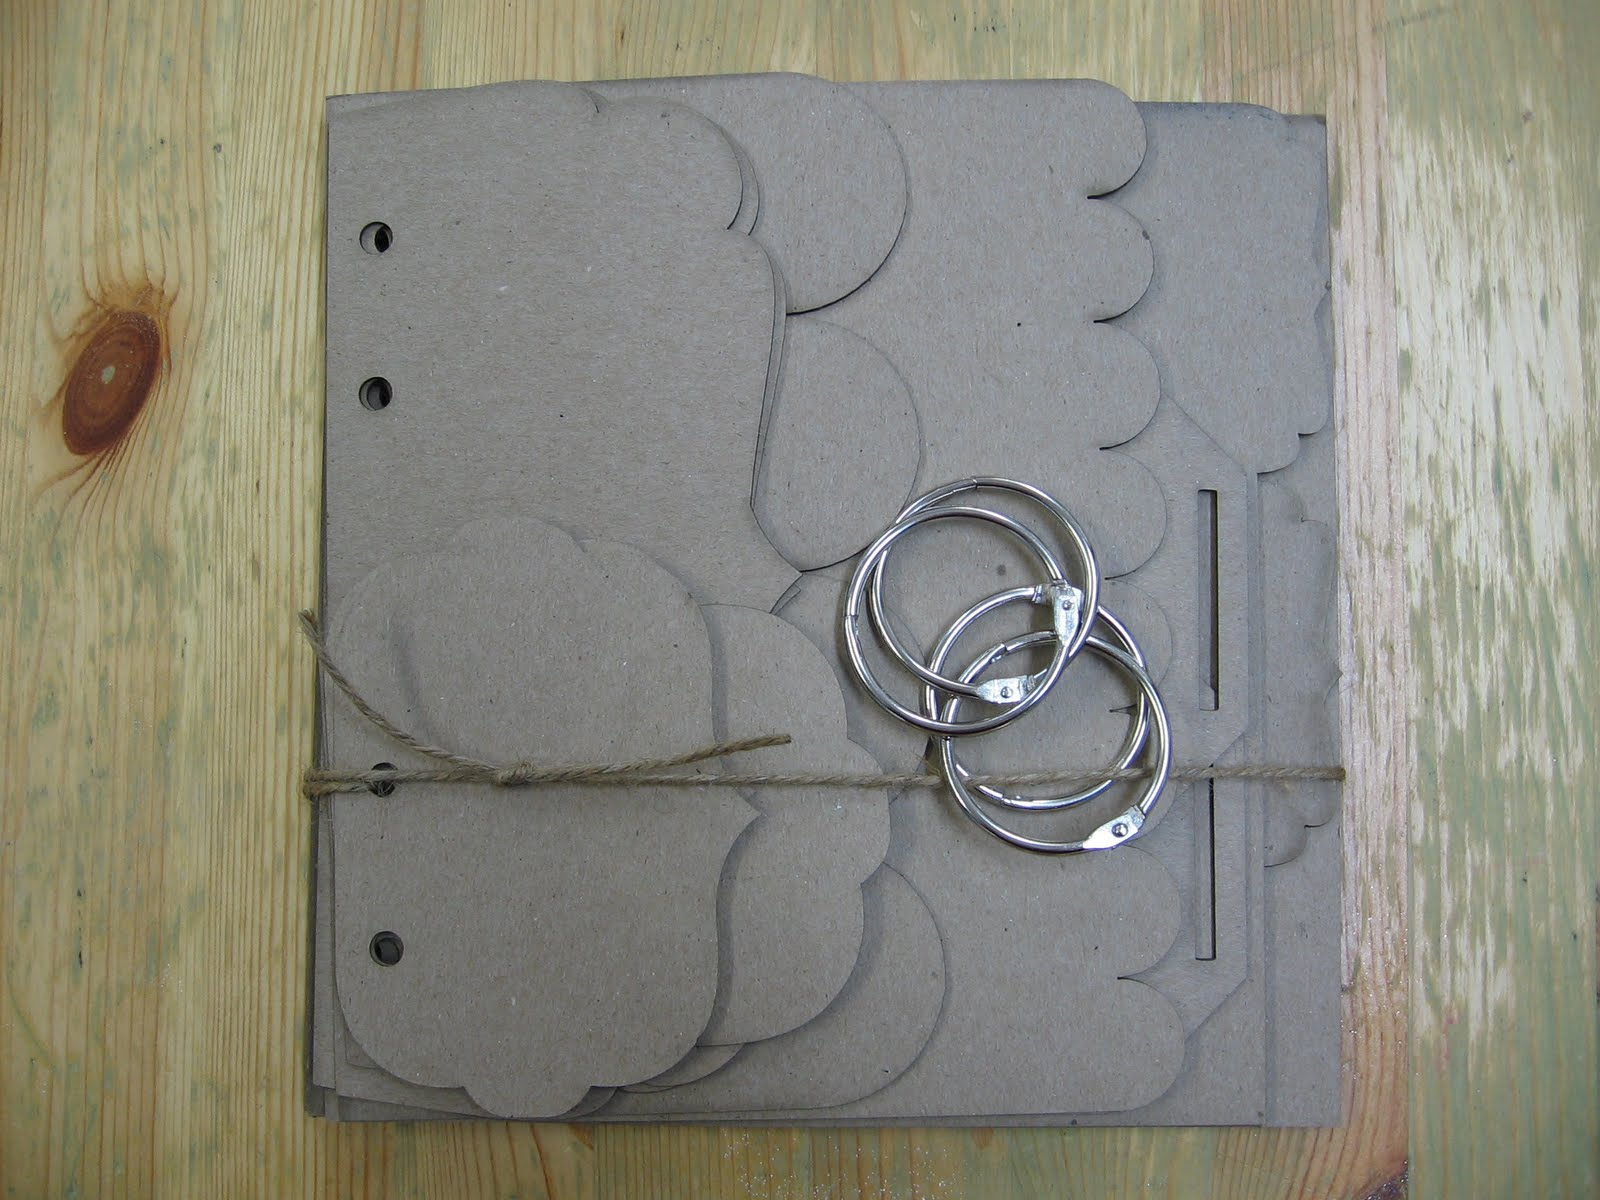 My stamping studio chipboard albums have arrived